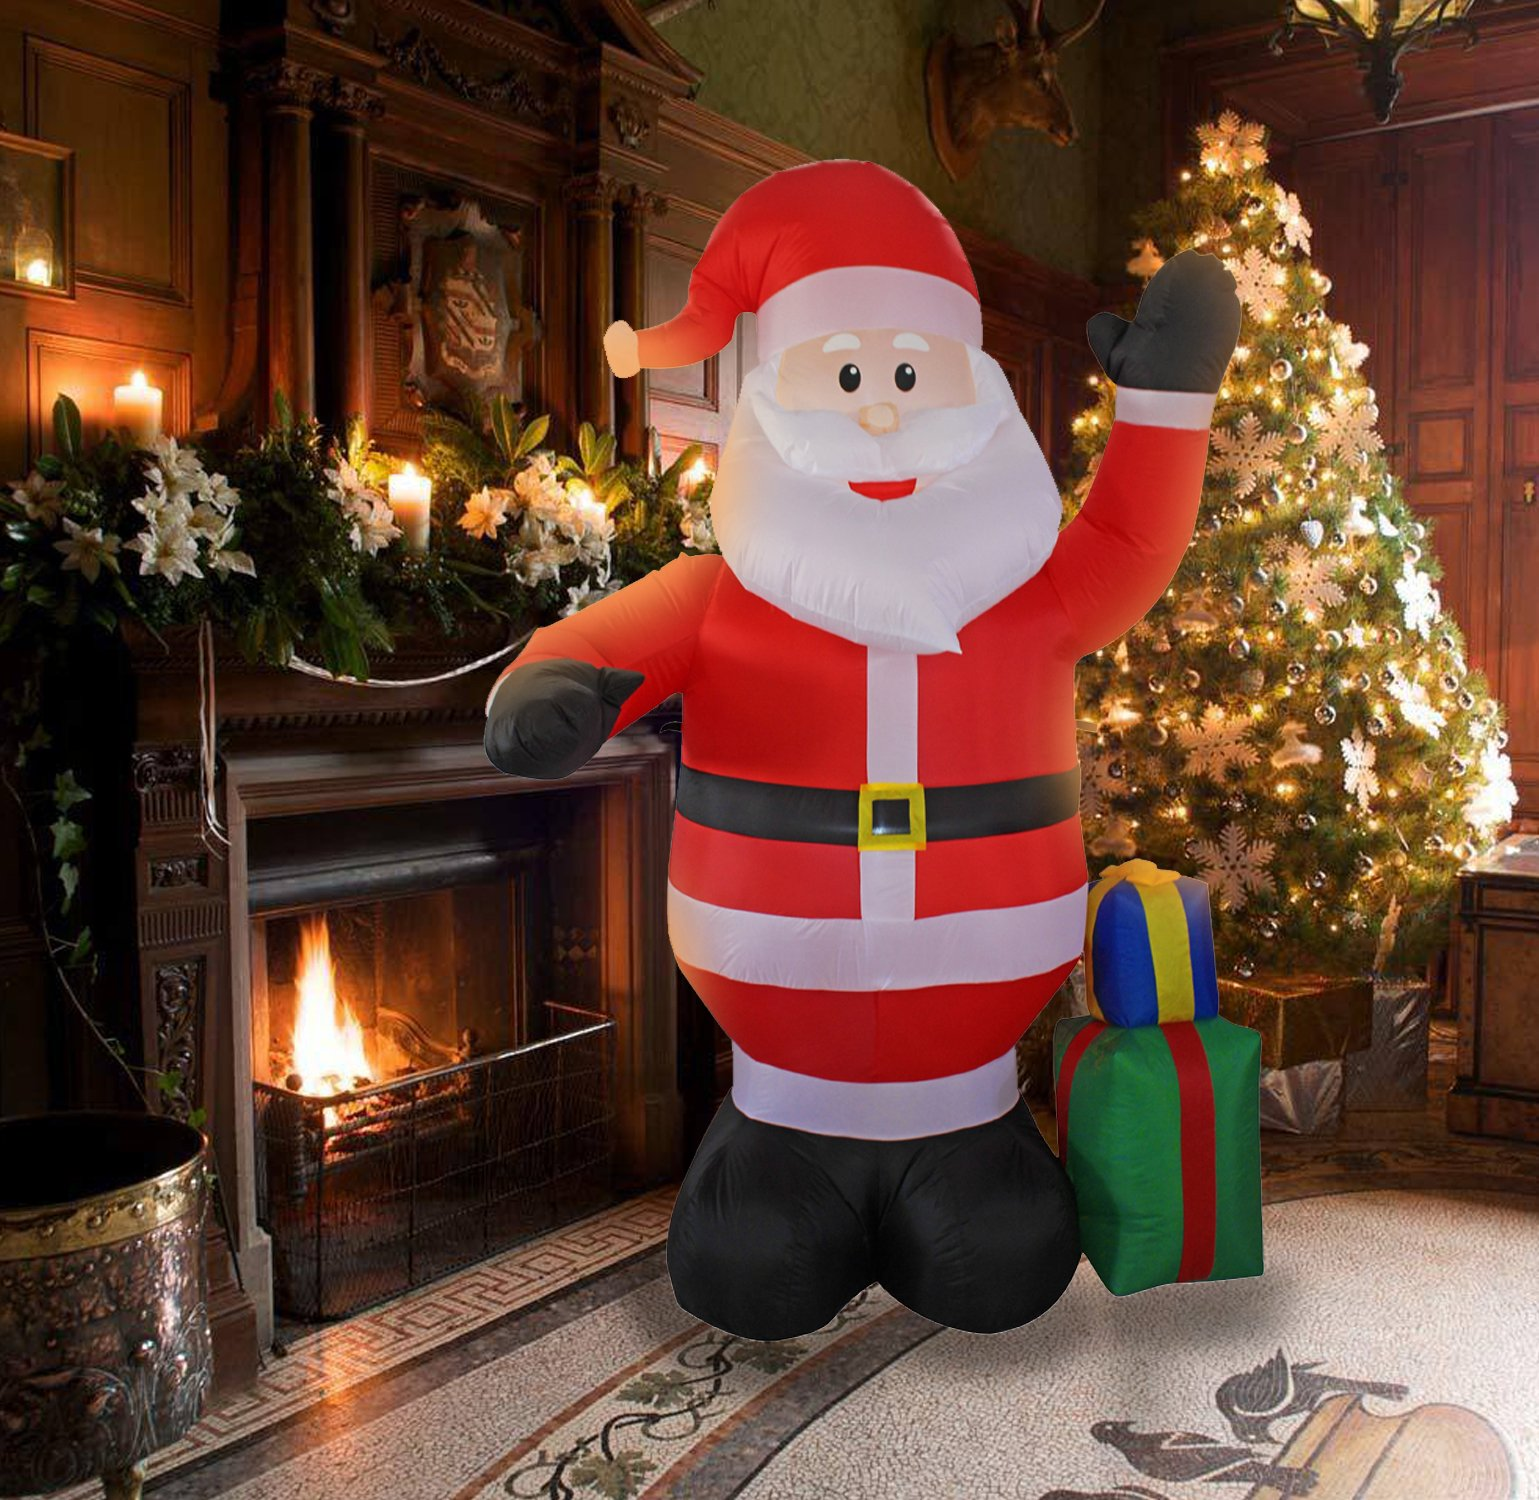 8 Ft Inflatable Christmas Santa Claus with a Gift Box Decorations for Indoors Outdoor Home Yard Lawn Garden Decor